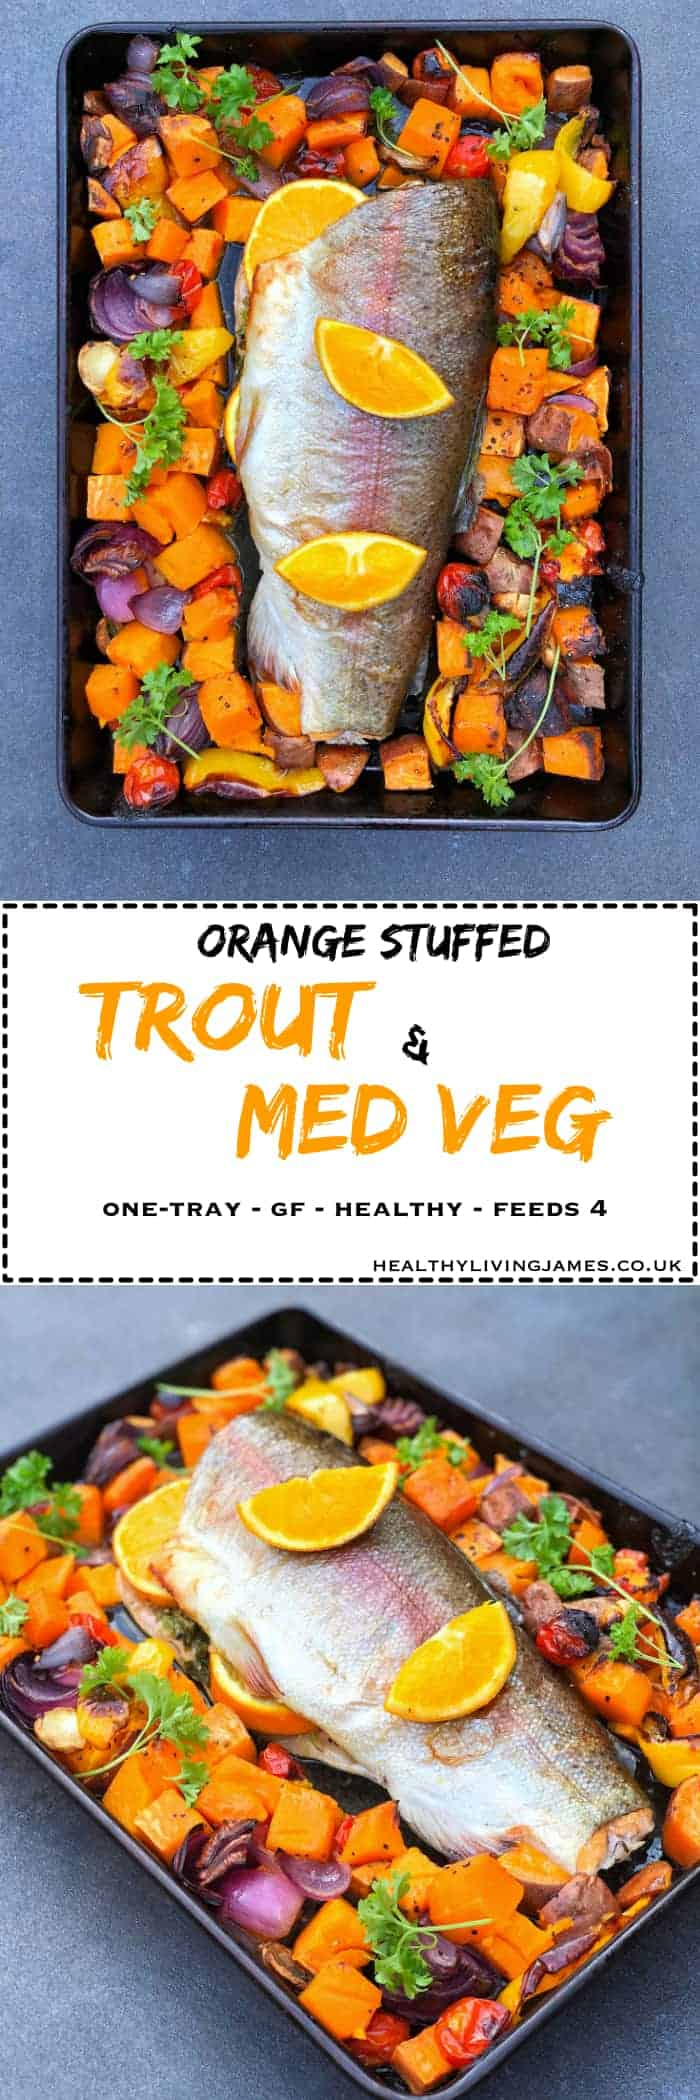 Orange Stuffed Trout & Med Veg Pinterest